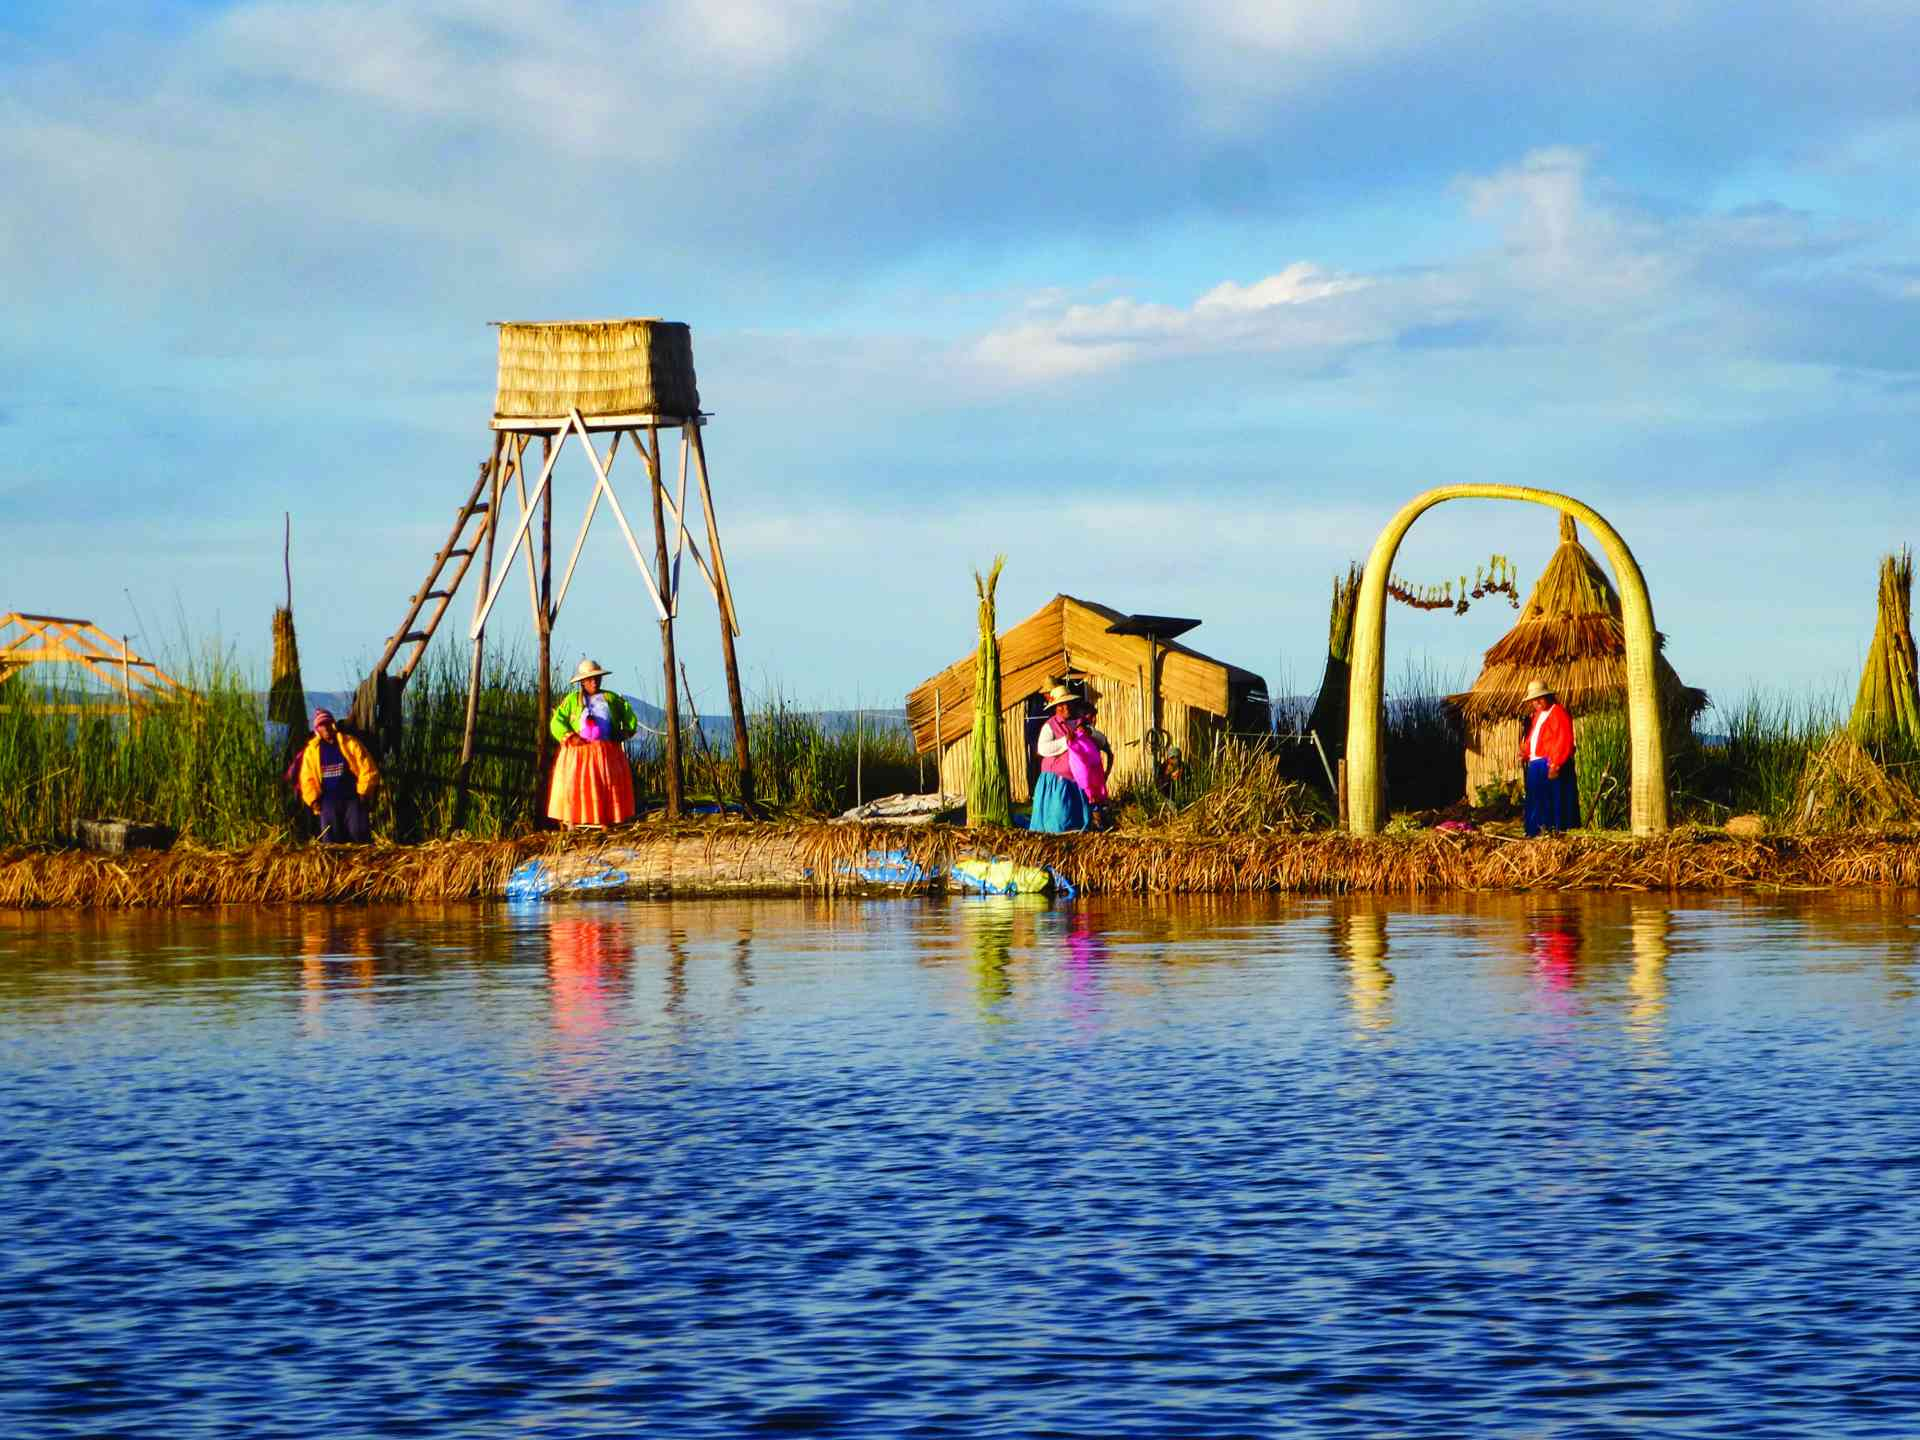 Uros Islands, Lake Titicaca, Peru by Marion Bunnik